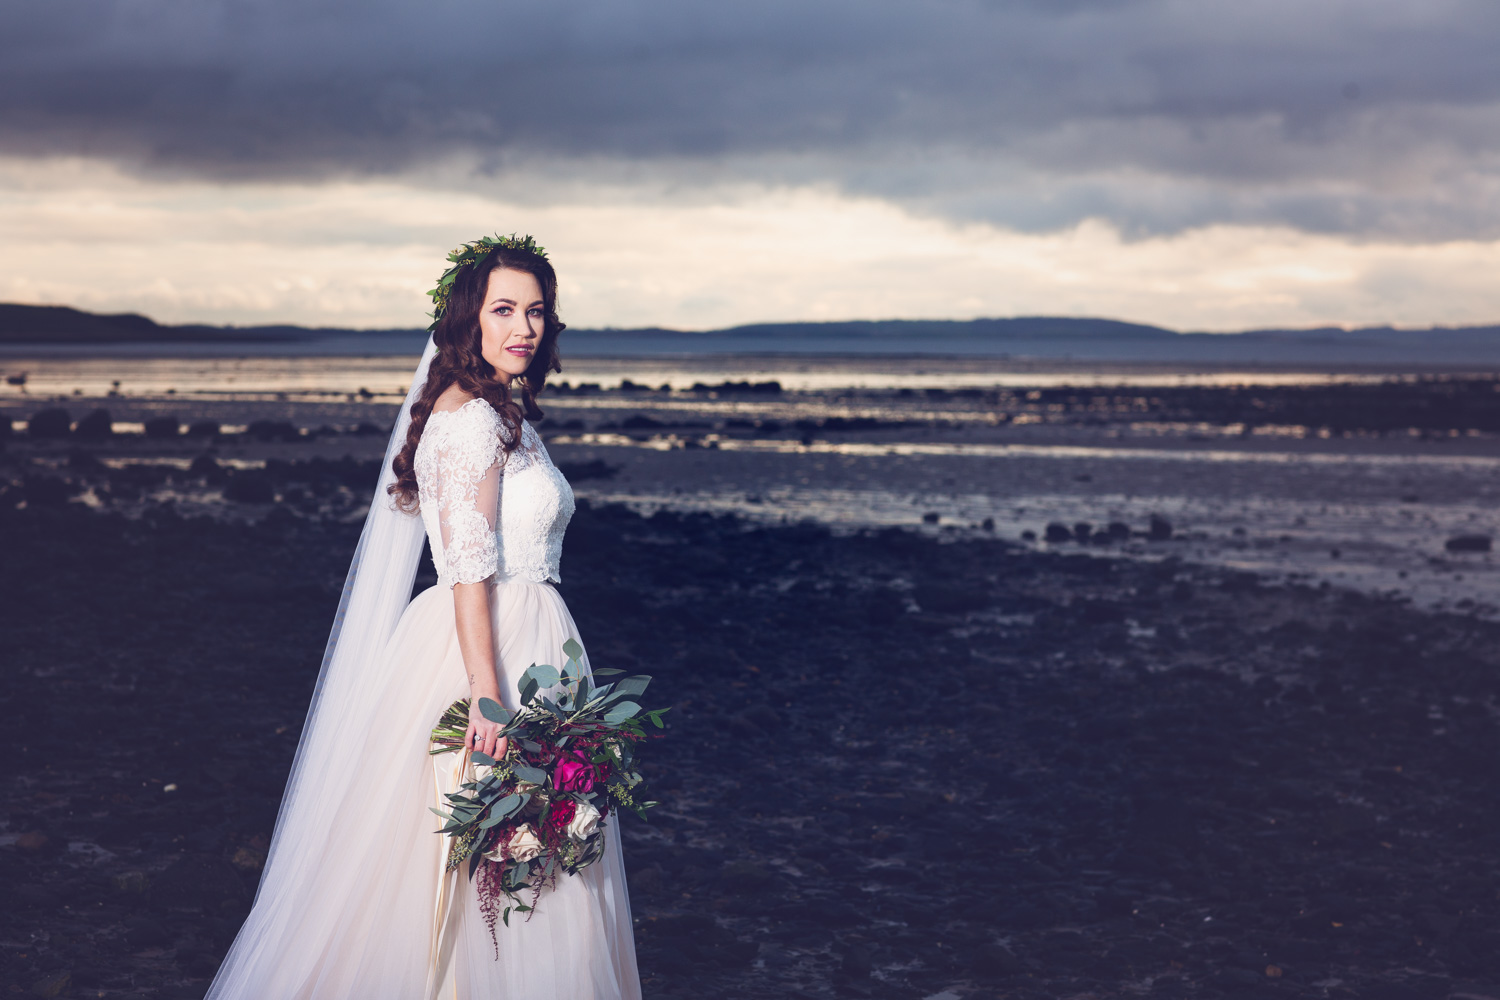 Mark_Barnes_wedding_photographer_Northern_Ireland_Wedding_photography_Orange_Tree_House_Greyabbey_Wedding_photography-49.jpg